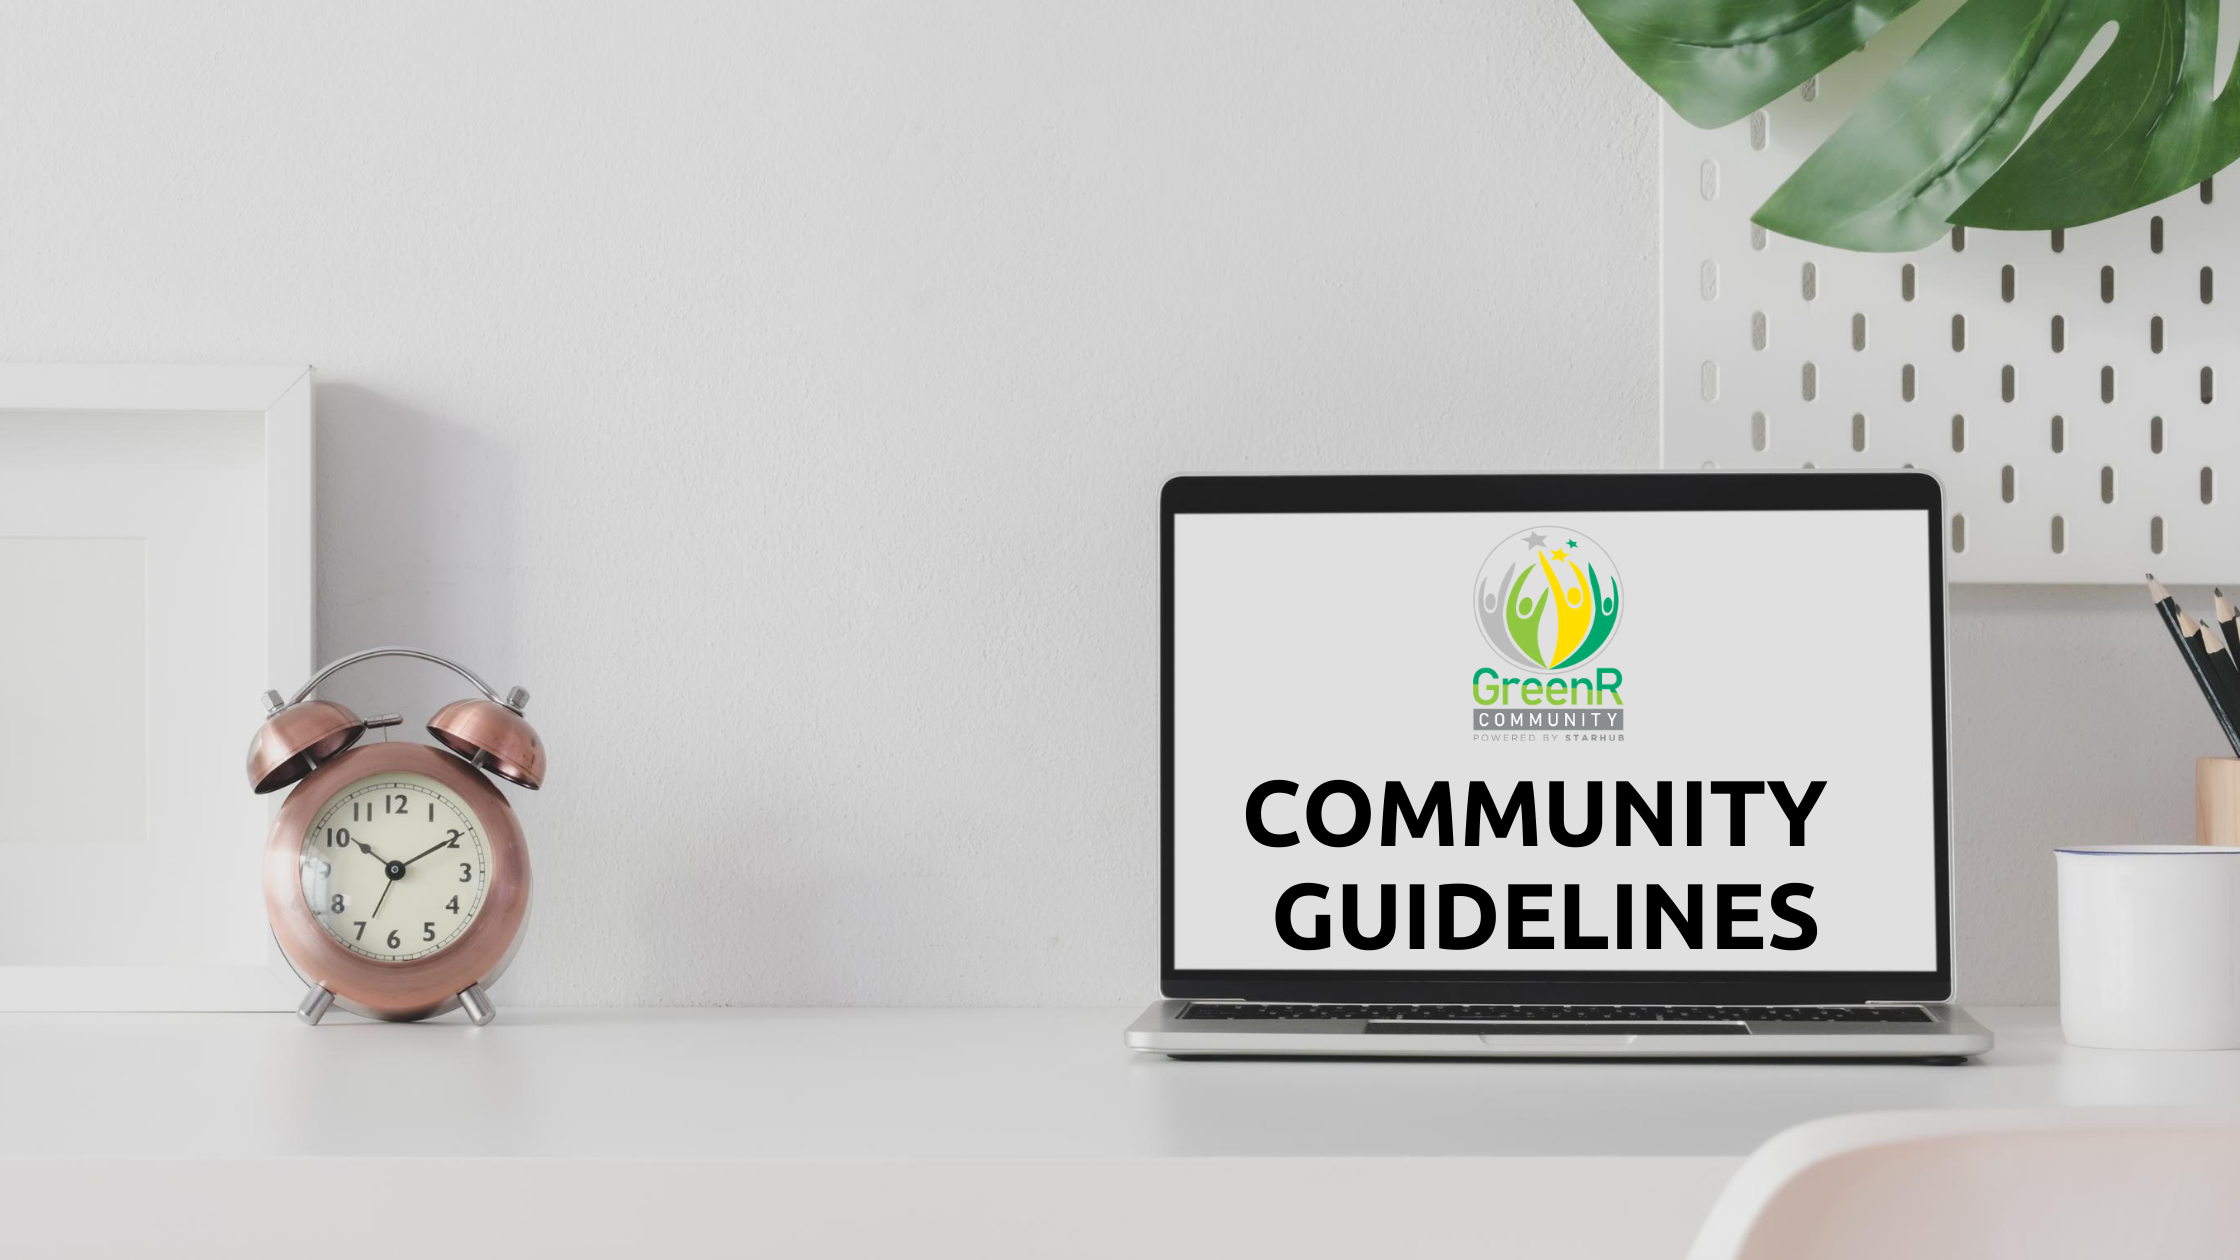 GreenR Community Guidelines